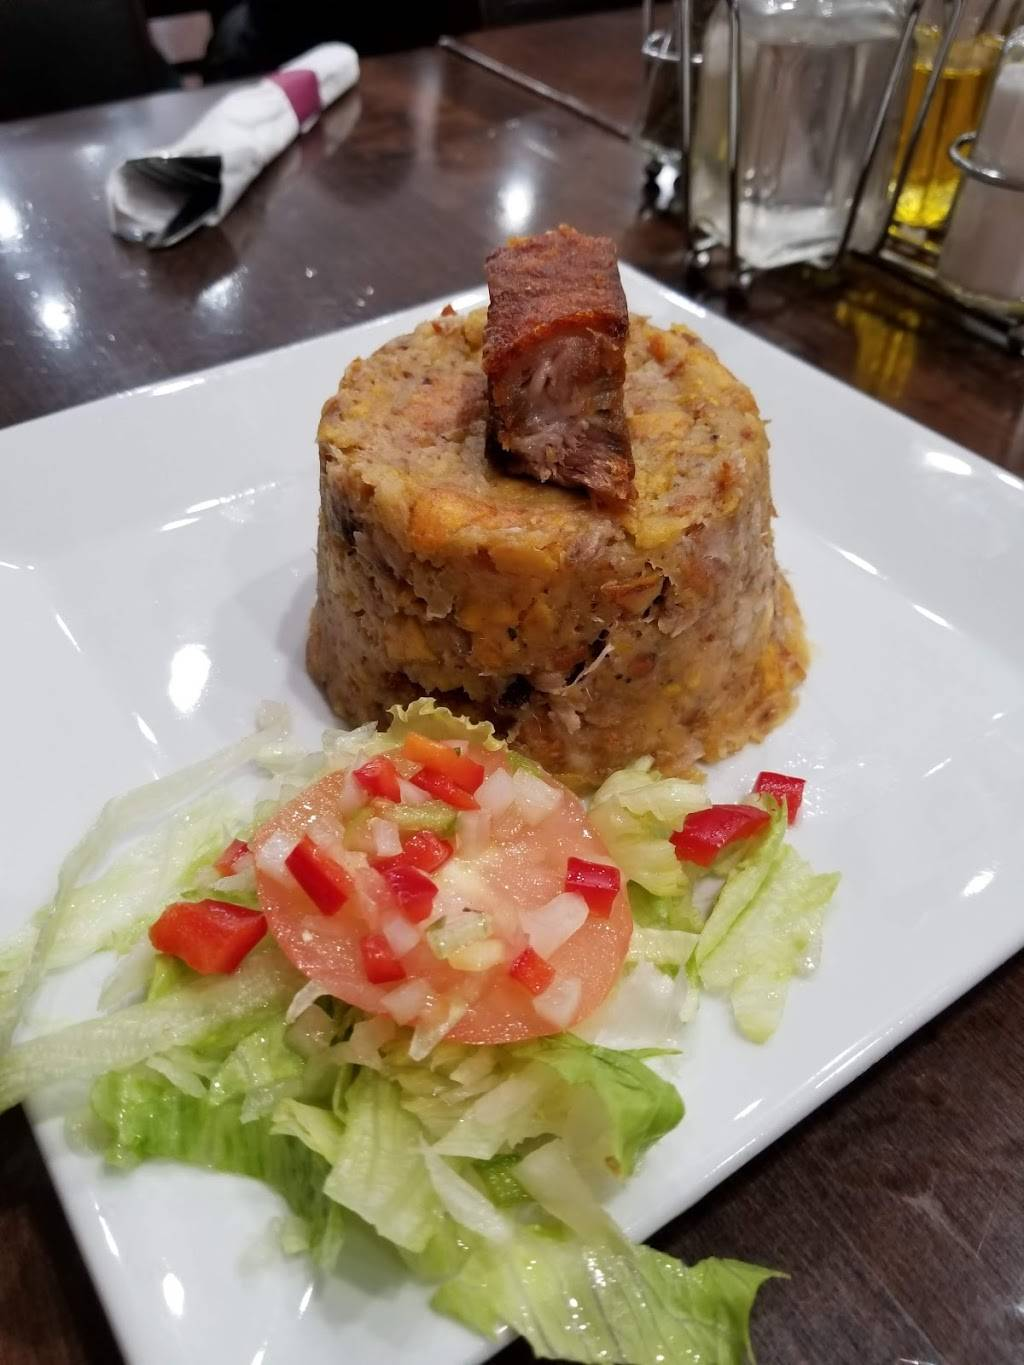 Exquisito | restaurant | 1542 Gates Ave, Brooklyn, NY 11237, USA | 7184972222 OR +1 718-497-2222